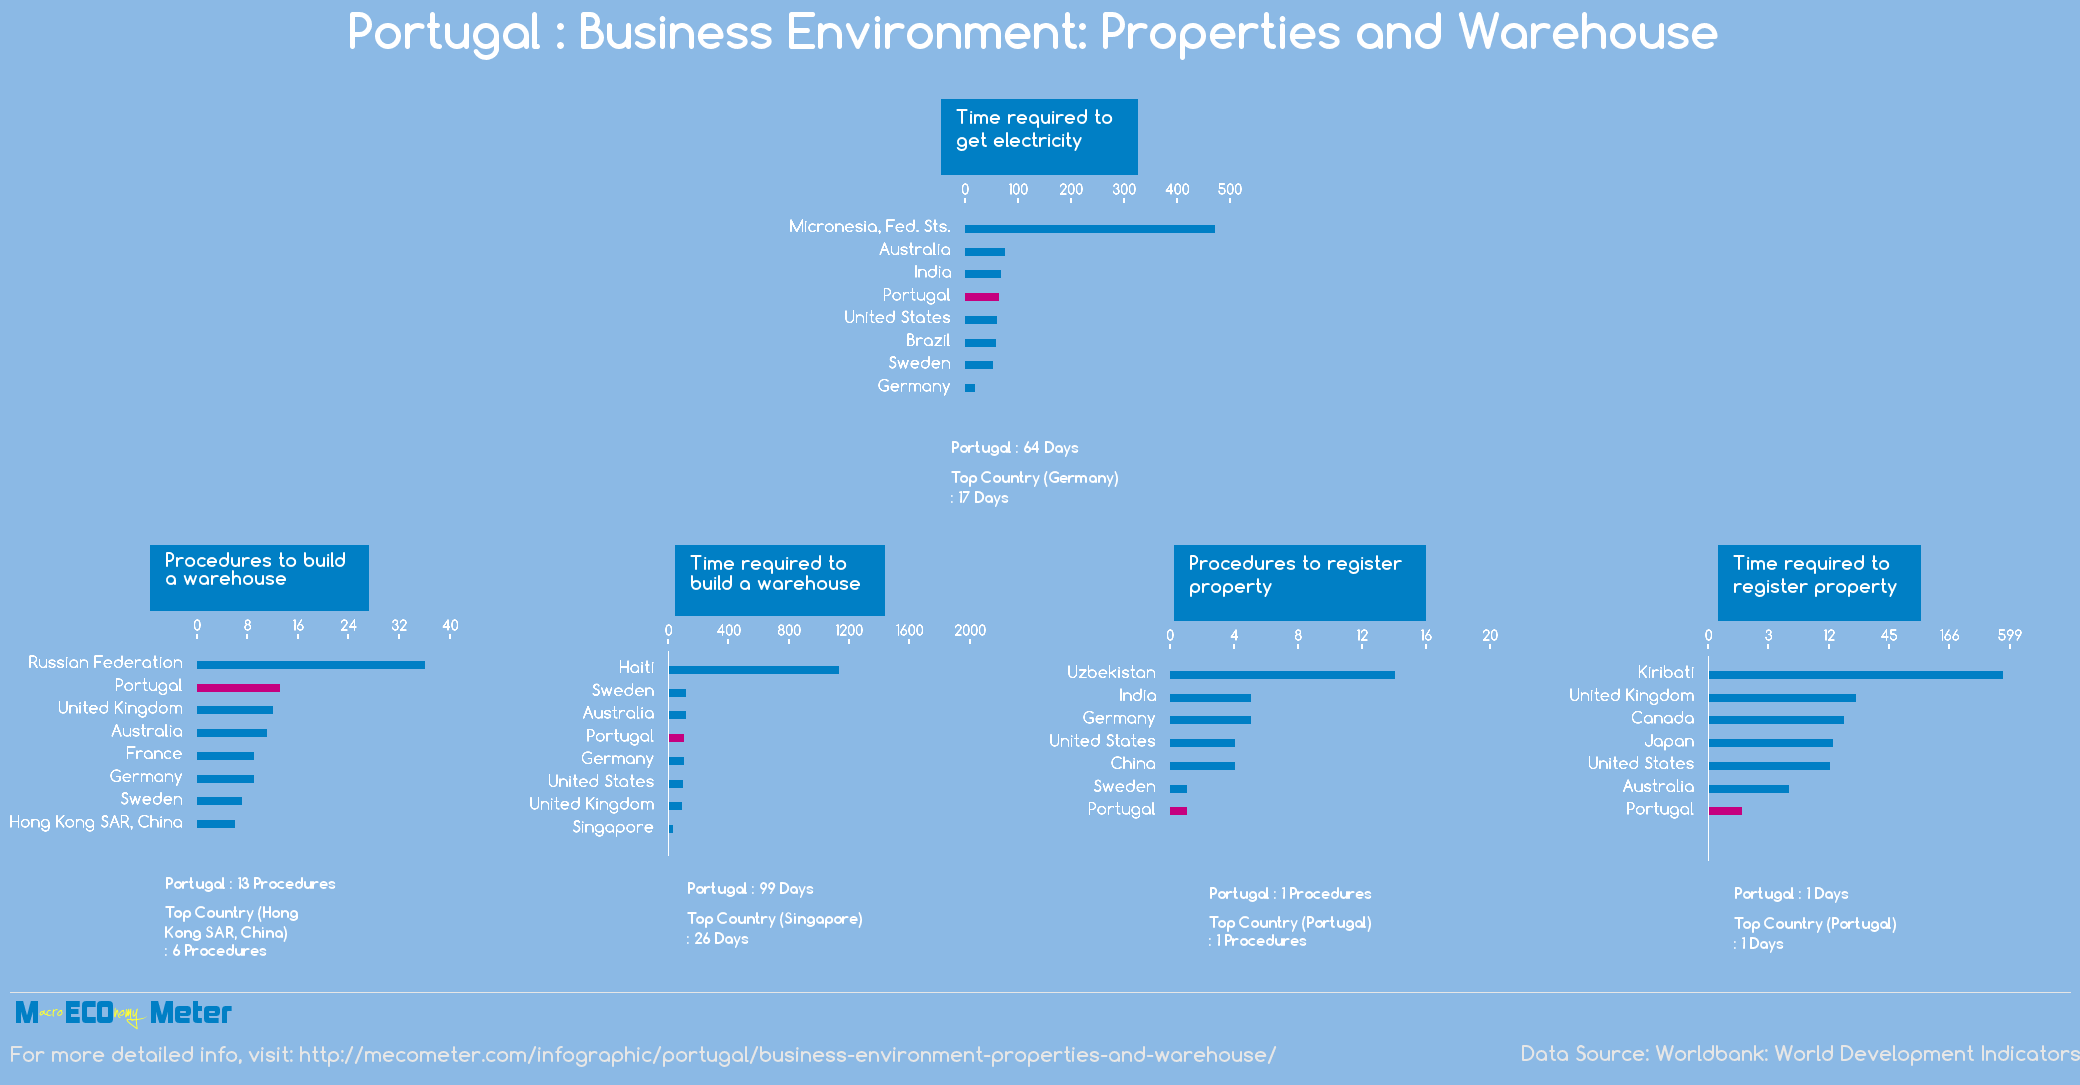 Portugal : Business Environment: Properties and Warehouse